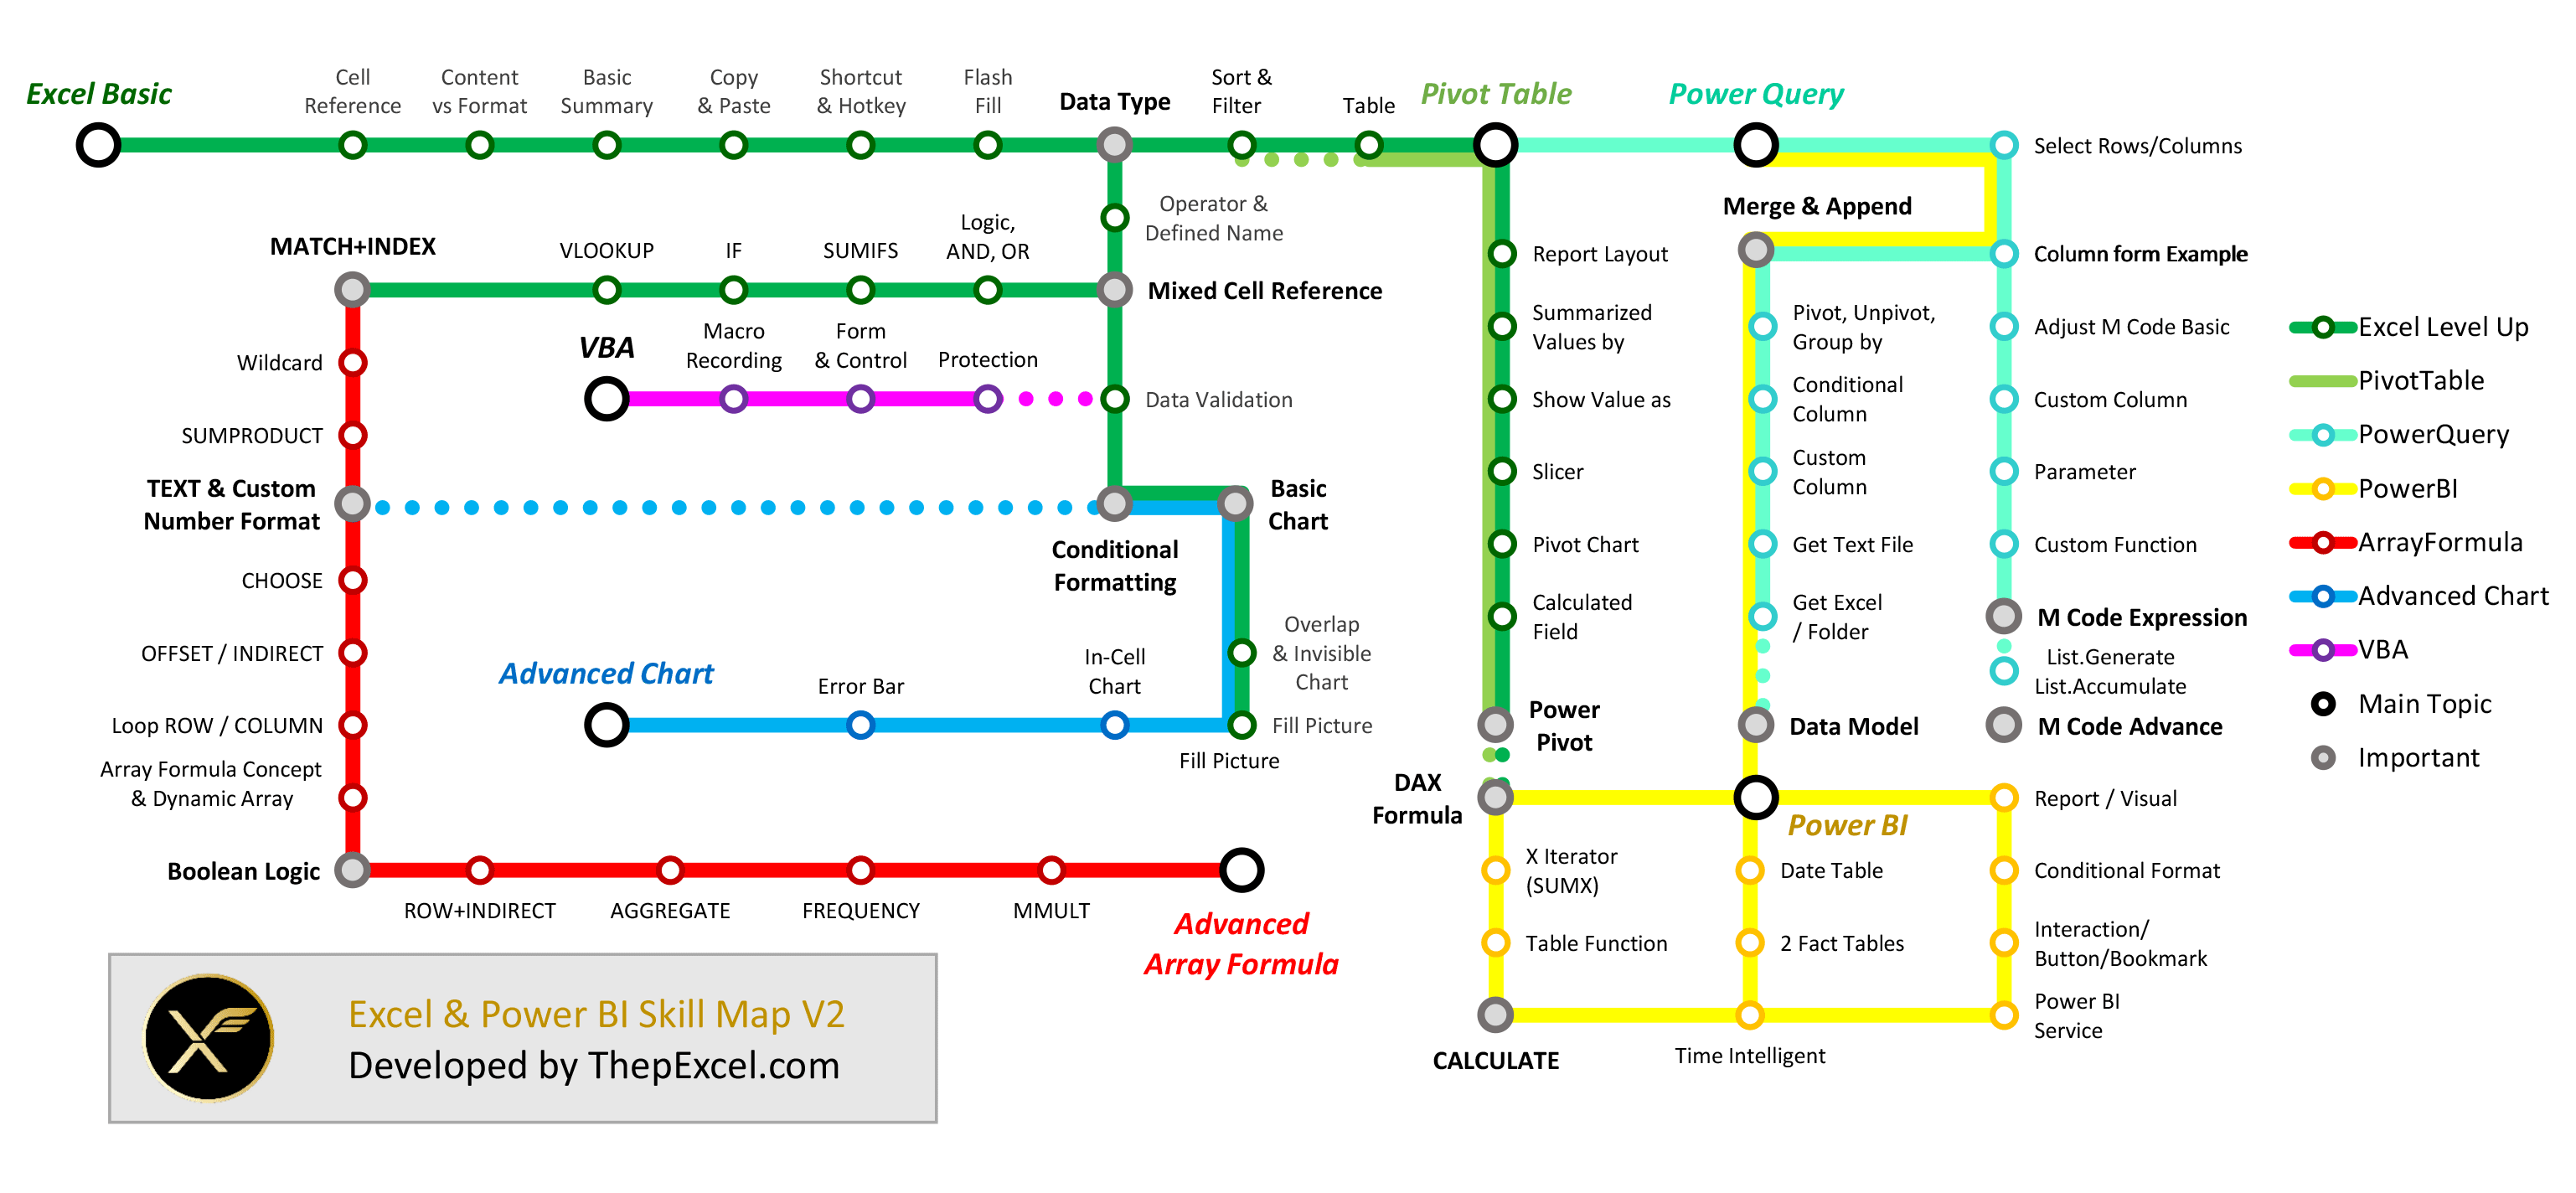 Excel Skill Map